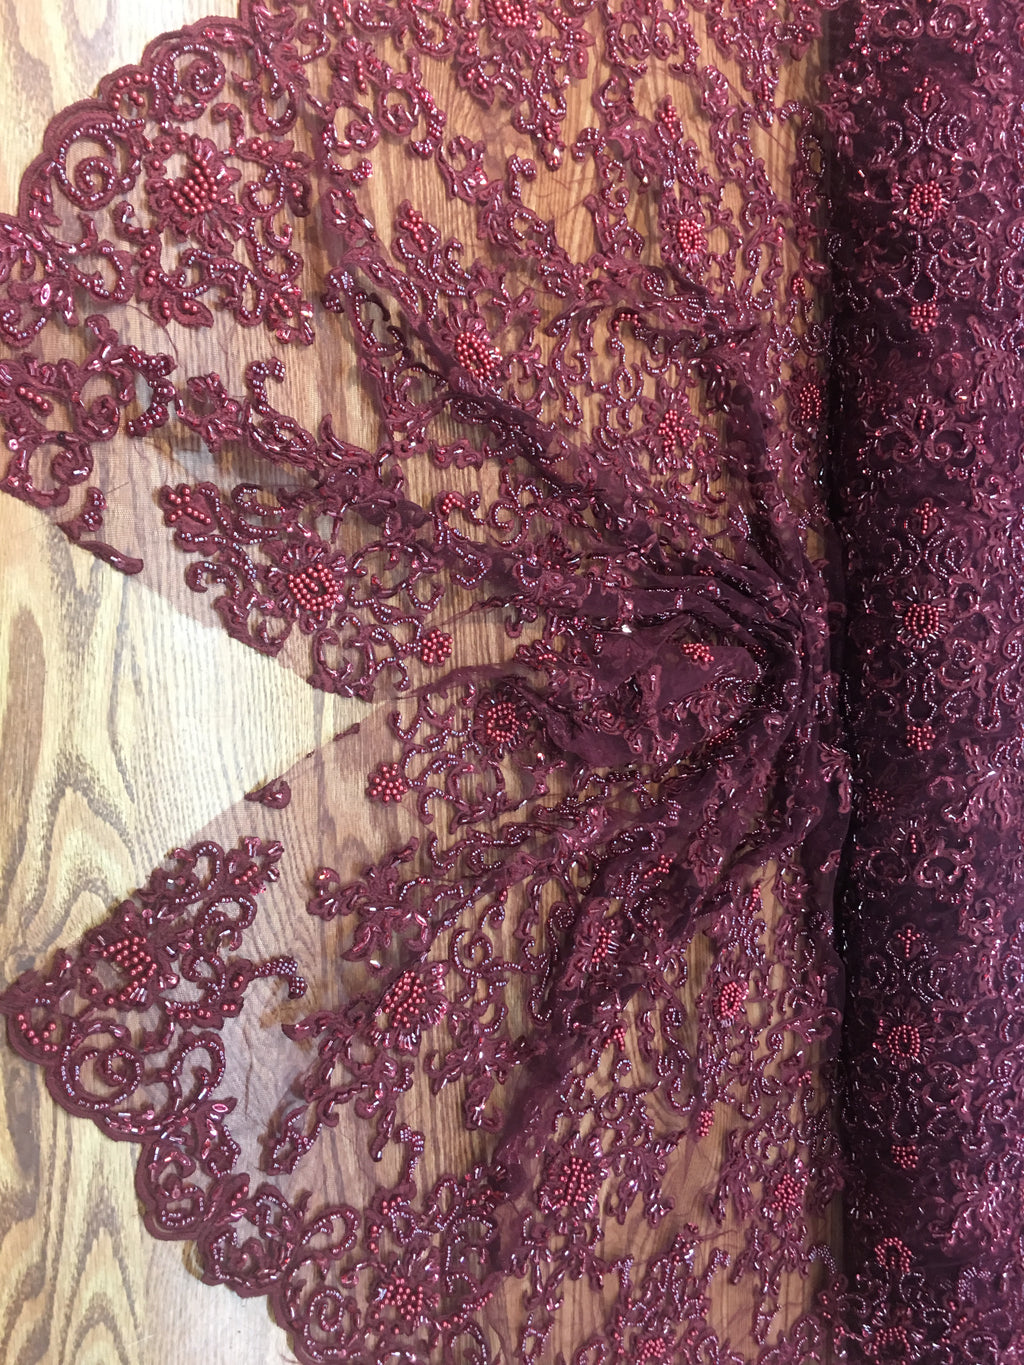 Burgundy Prom Beaded Fabric Wedding Mesh Shop Mesh Lace Beaded Fabric By The Yard Lace Heavy Beads For Bridal Veil Fashion Fabric - KINGDOM OF FABRICS